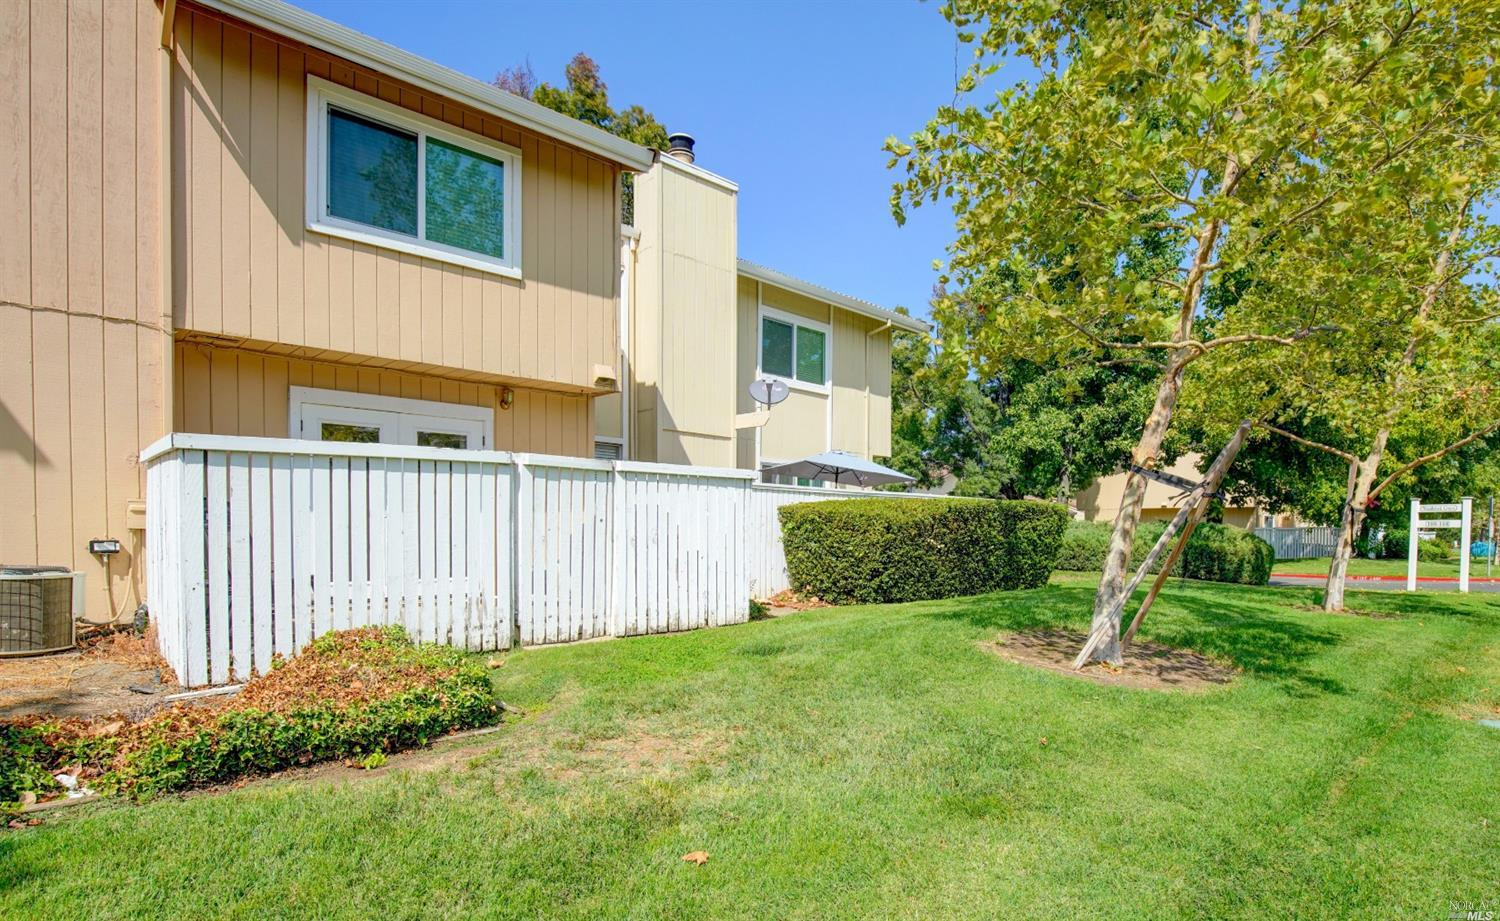 Spacious 3 Bed, 2.5 Bath 2 Story Condo conveniently located near Entry and Guest Parking.  This home